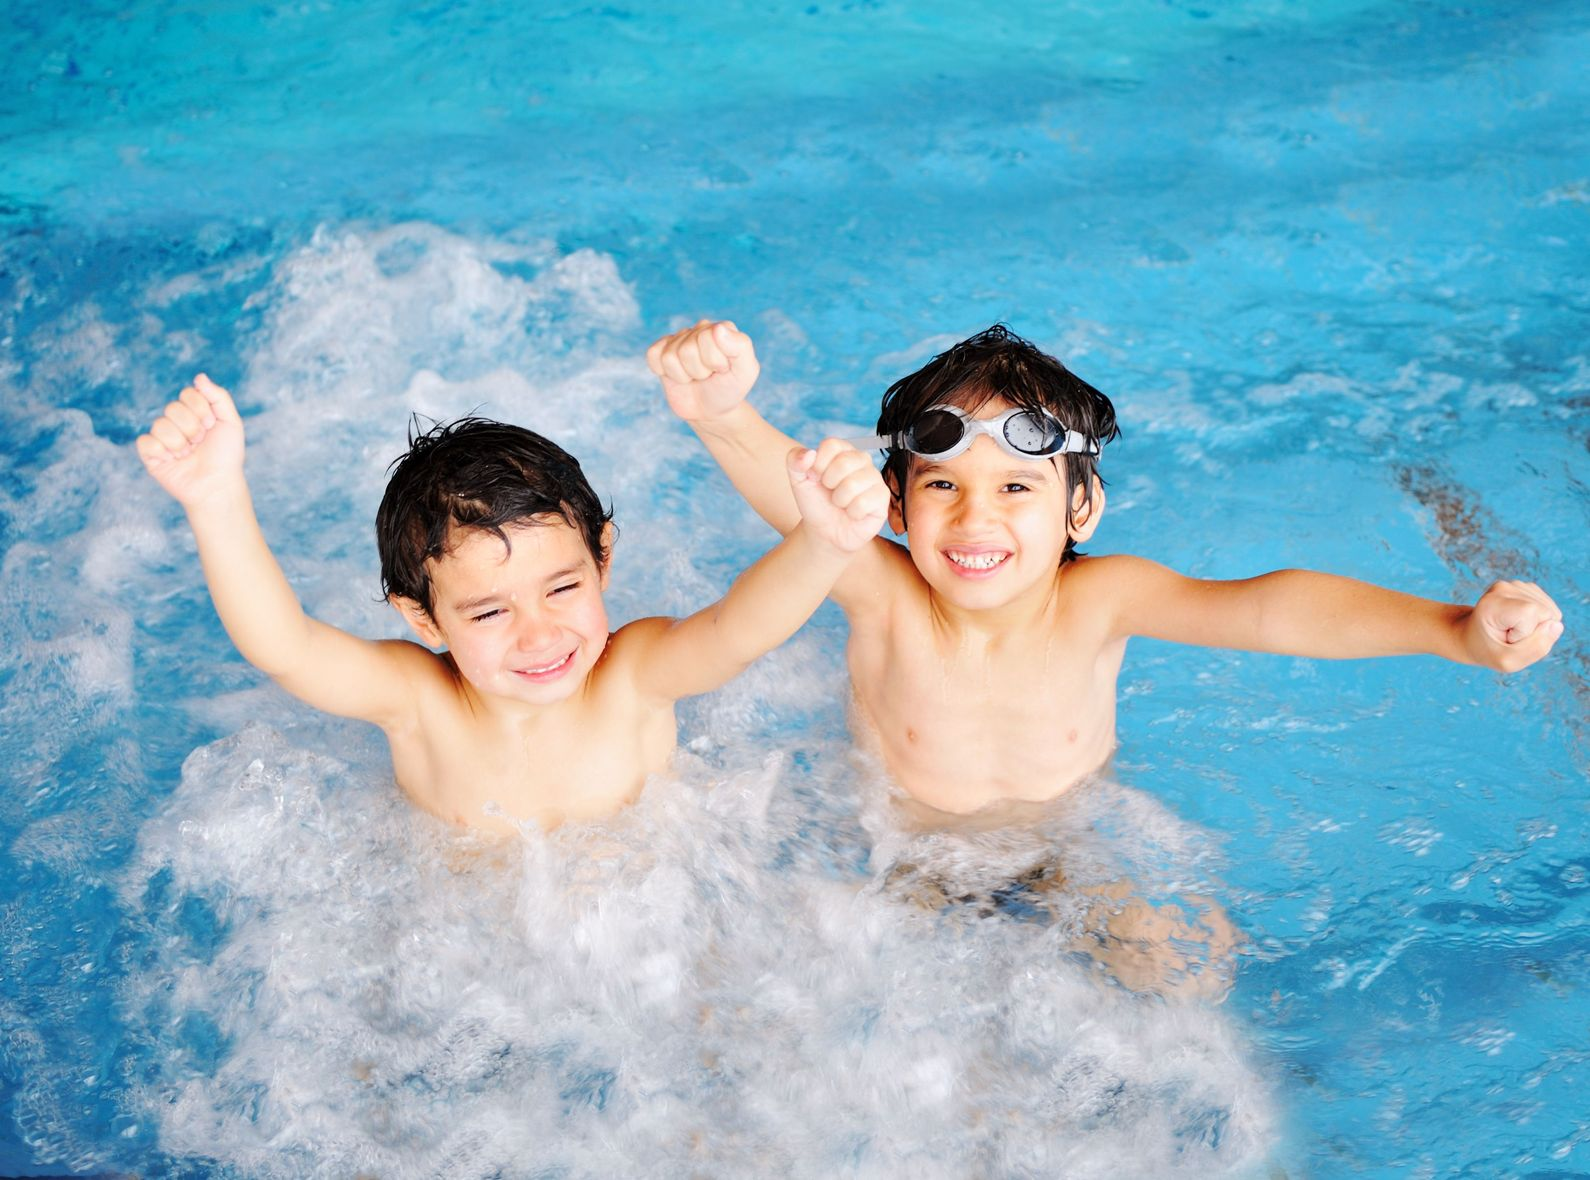 6759183 - children at pool, happiness and joy